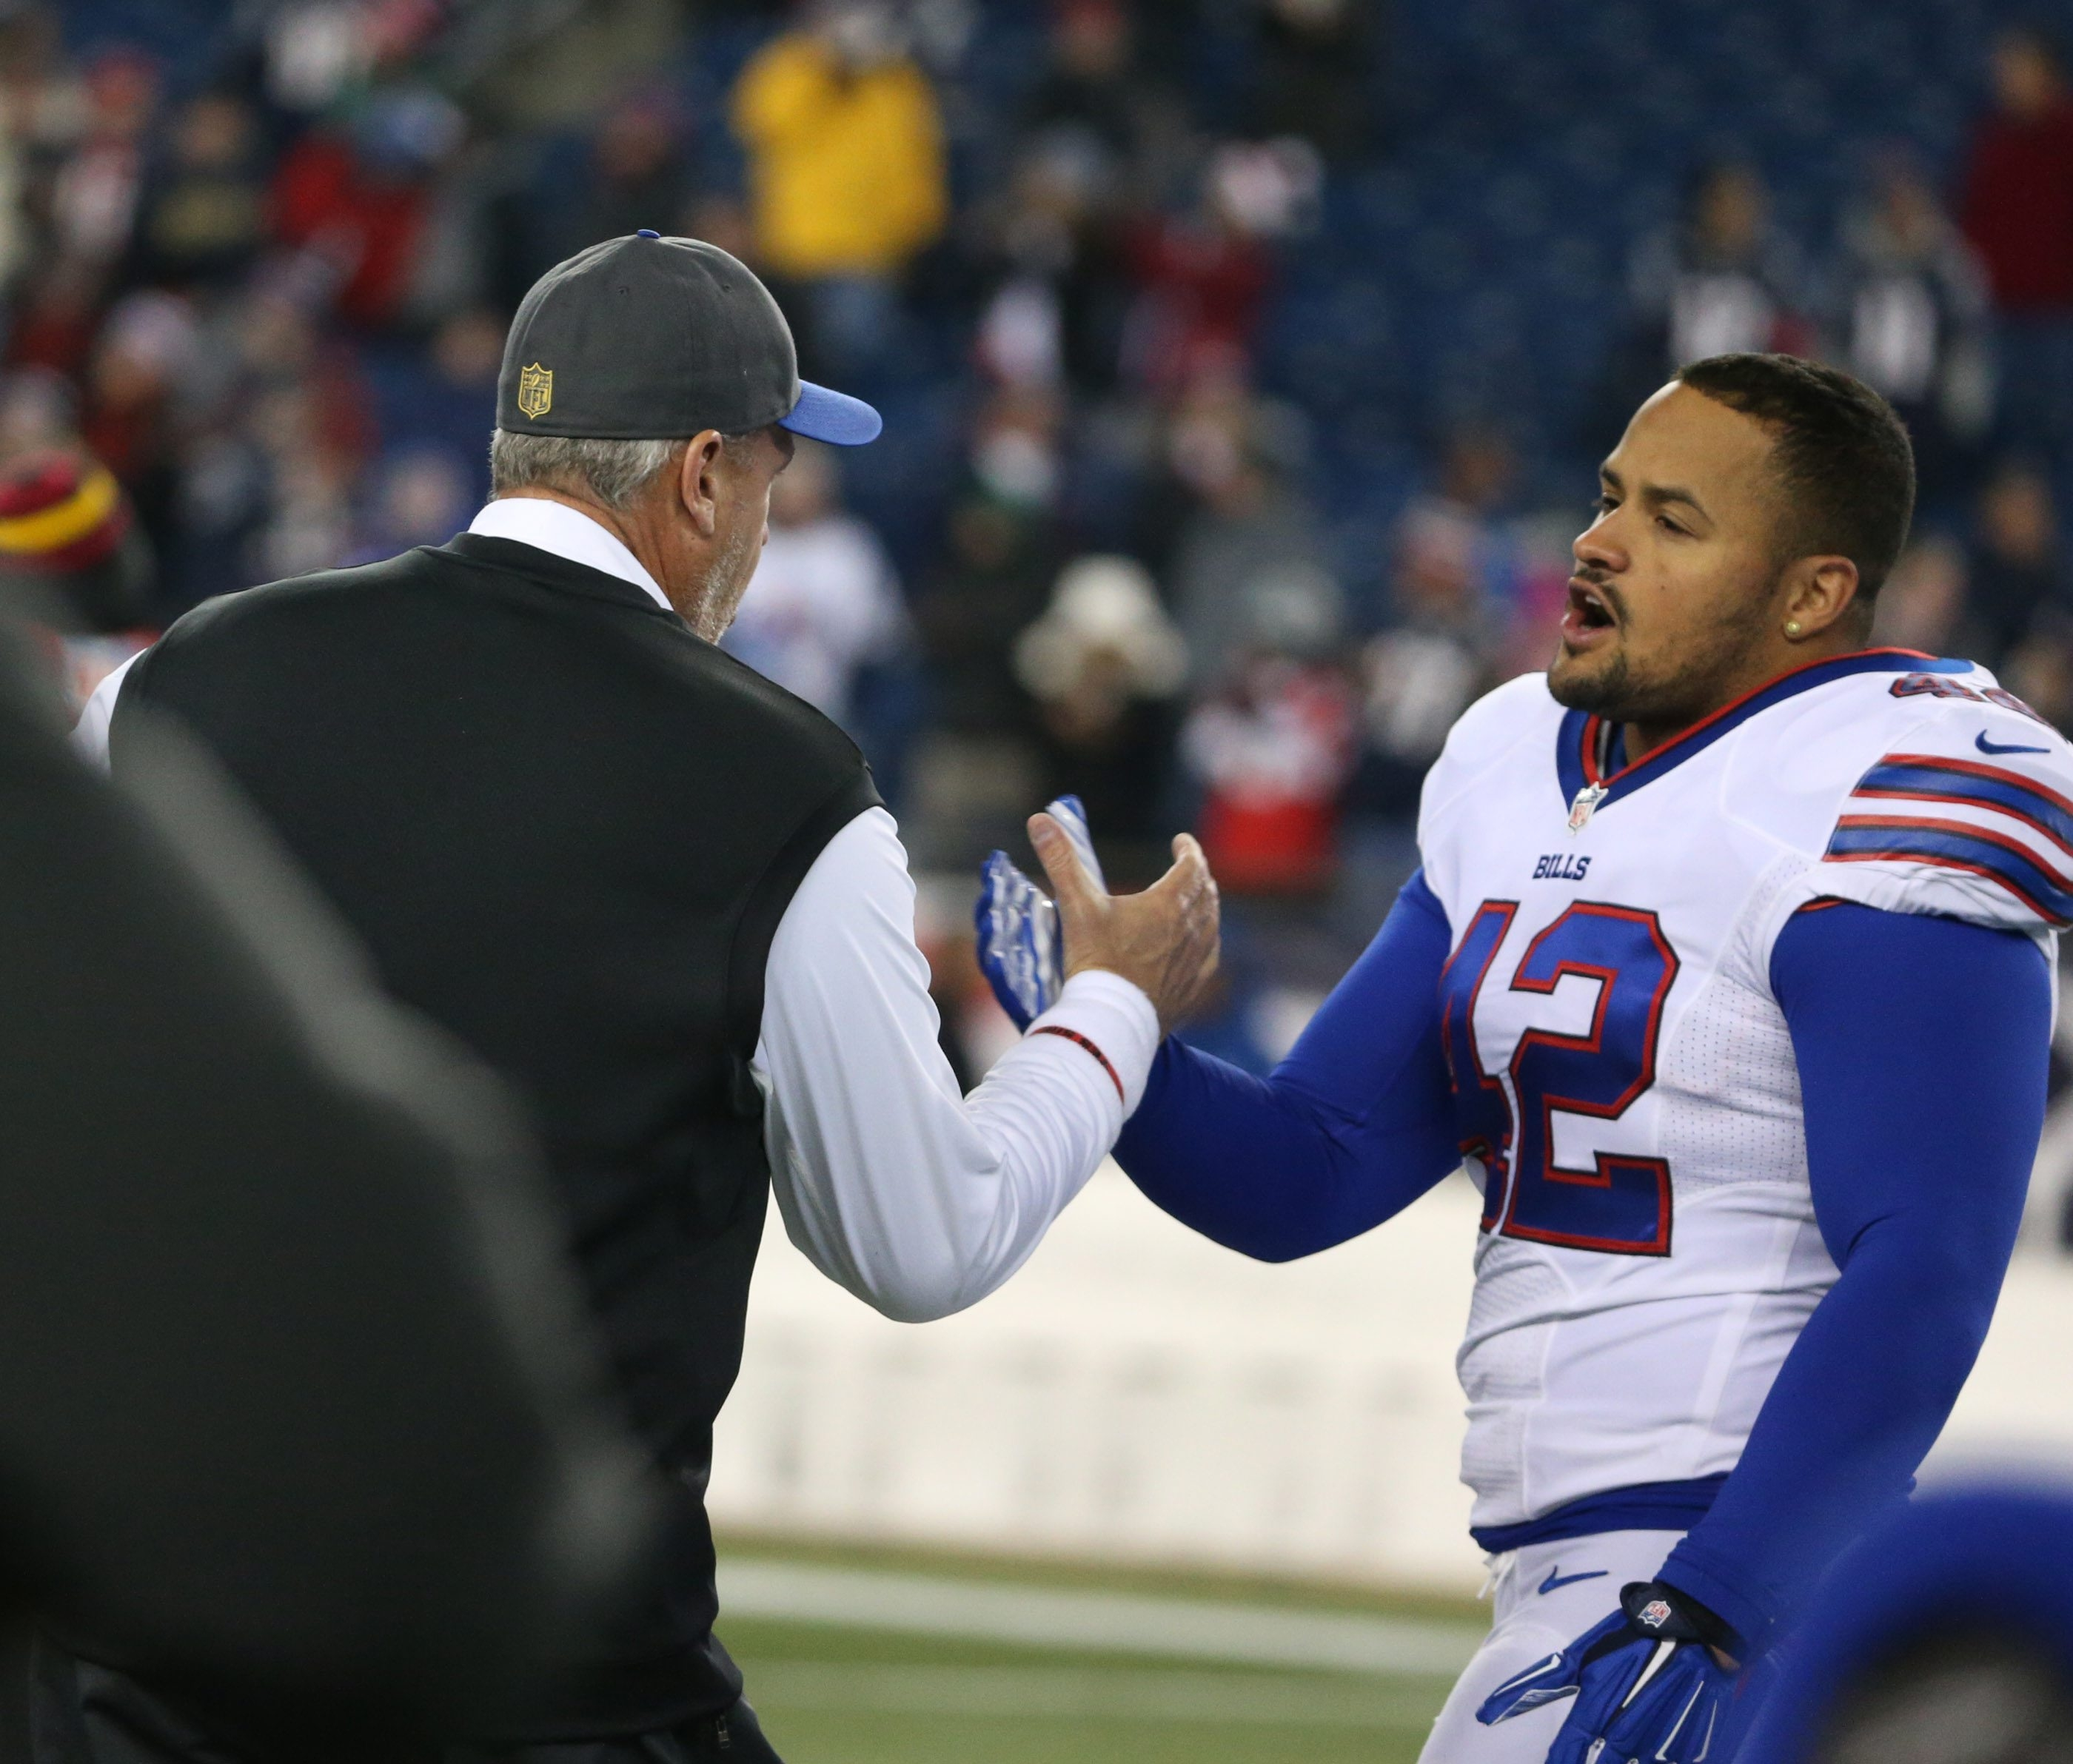 Bills fullback Jerome Felton, being greeted by coach Rex Ryan, had a disappointing first season with the Bills and will face competition for his job from Glenn Gronkowski. (James P. McCoy/ Buffalo News file photo)